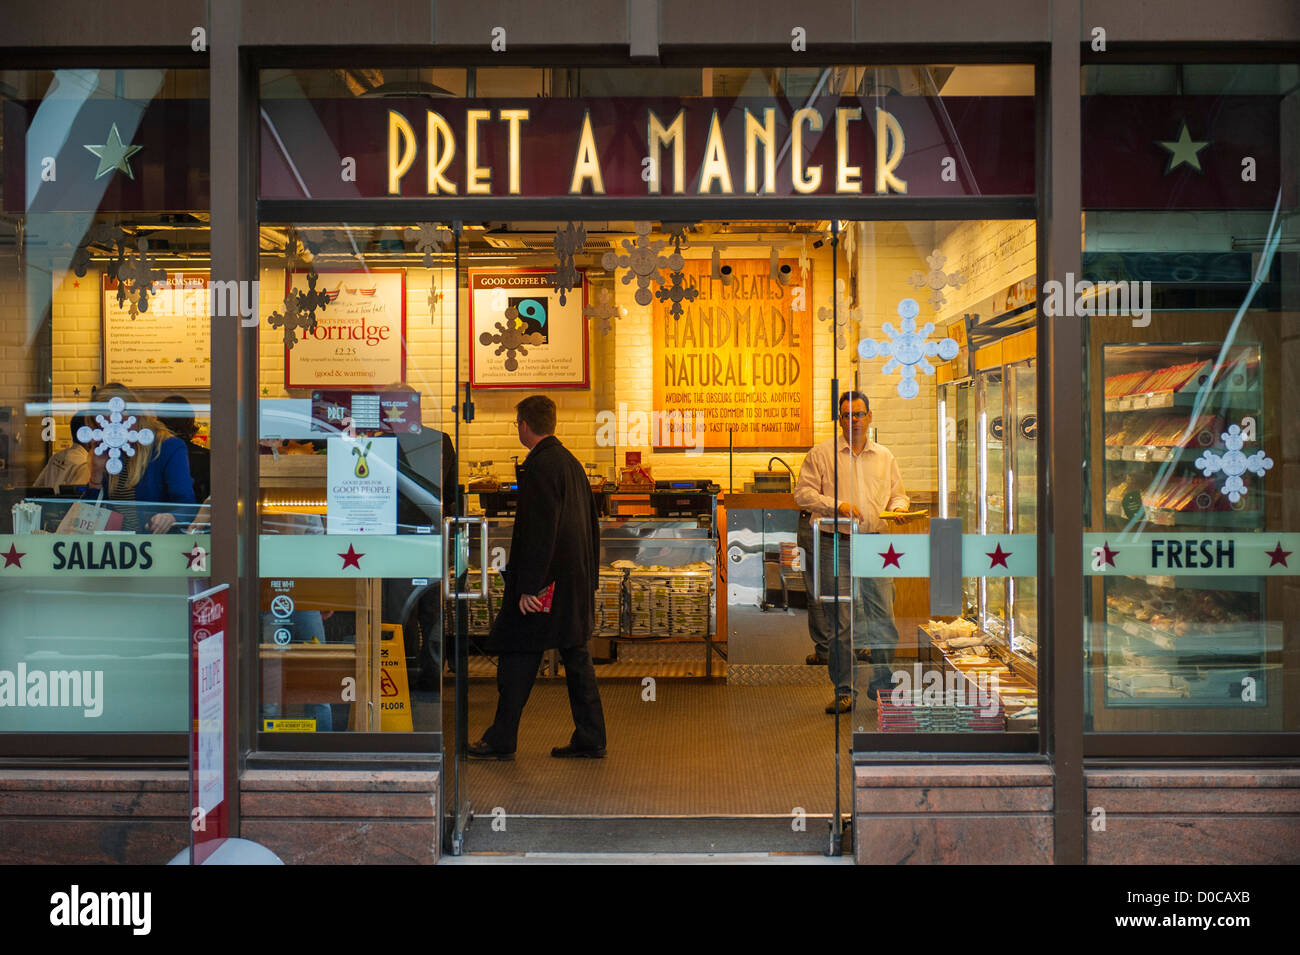 London City Pret a Manger fast food snack sandwich  : london city pret a manger fast food snack sandwich salad bar cafe D0CAXB from www.alamy.com size 1300 x 954 jpeg 216kB